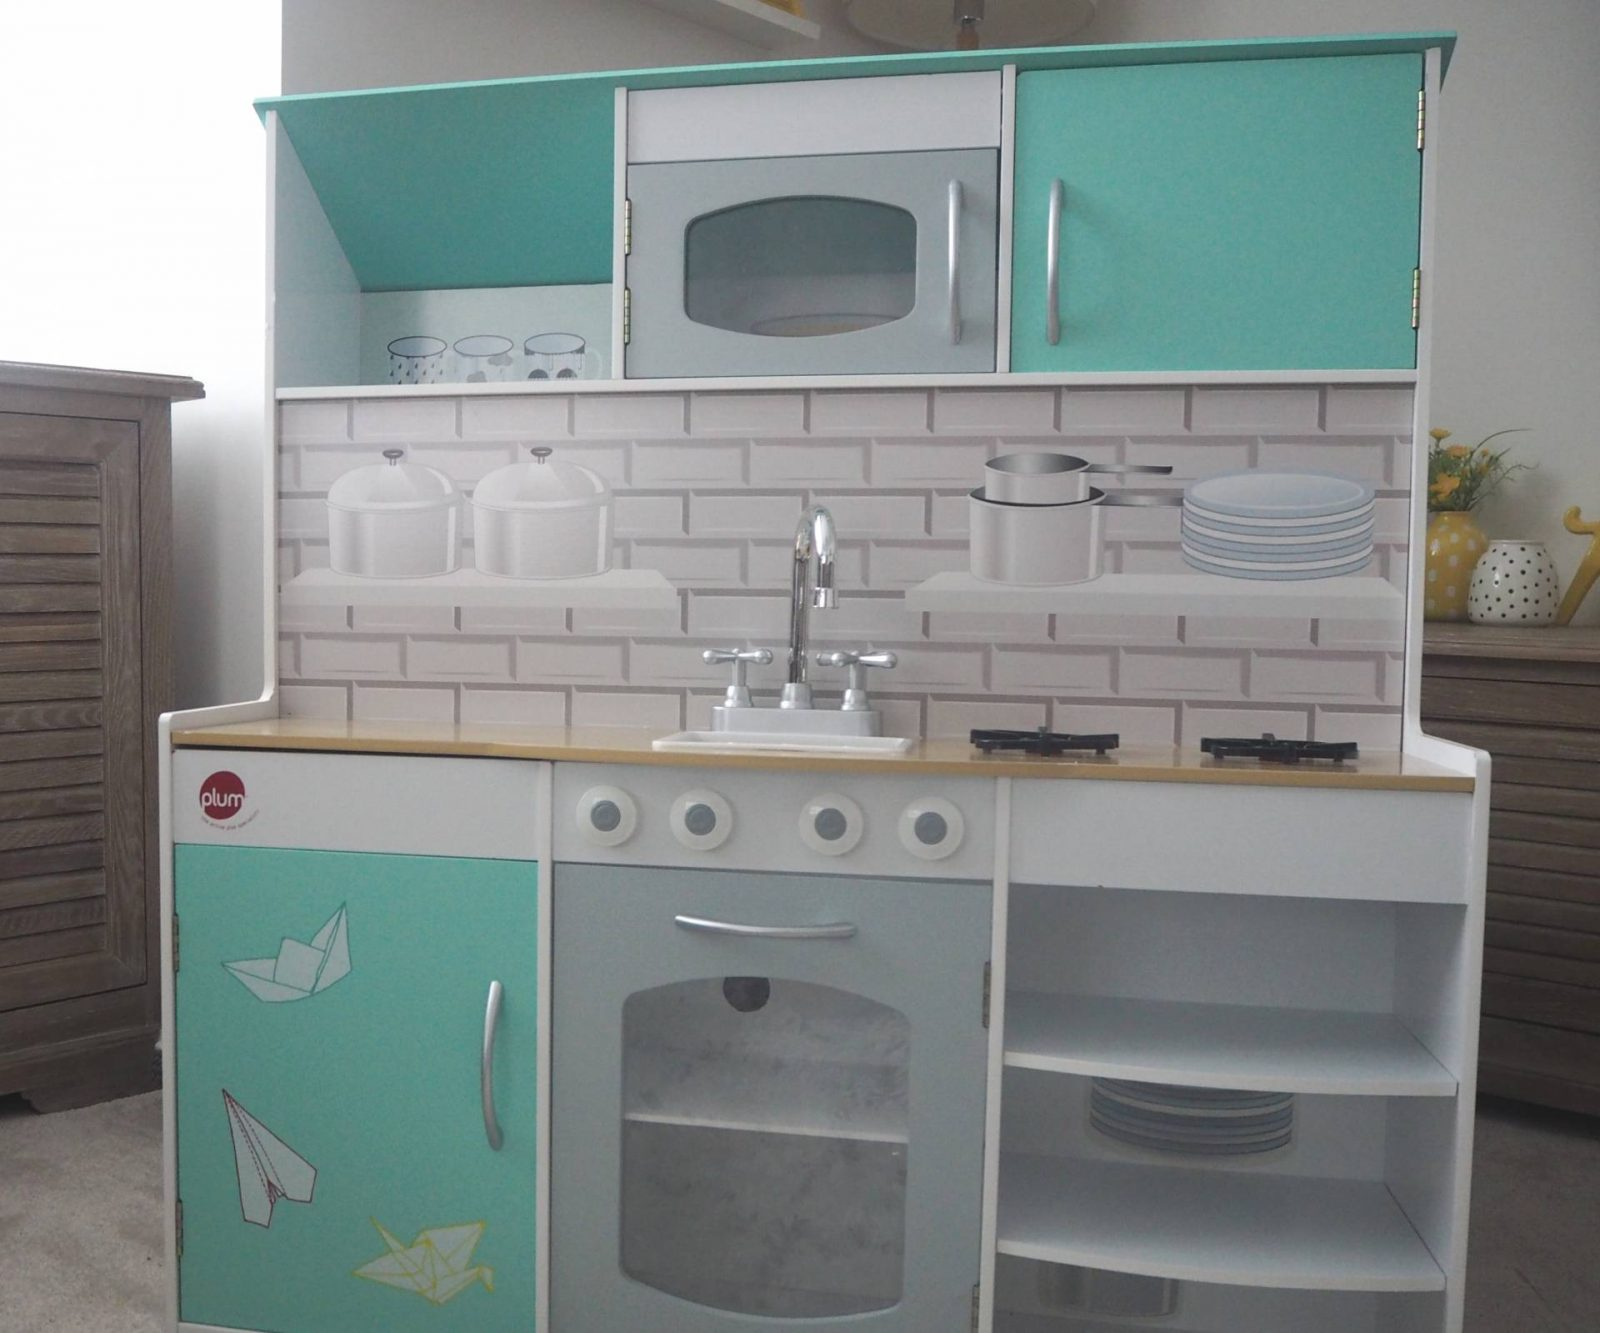 What A Clever Idea…The Peppermint Townhouse 2 In 1 Kitchen and Dolls House From Plum!